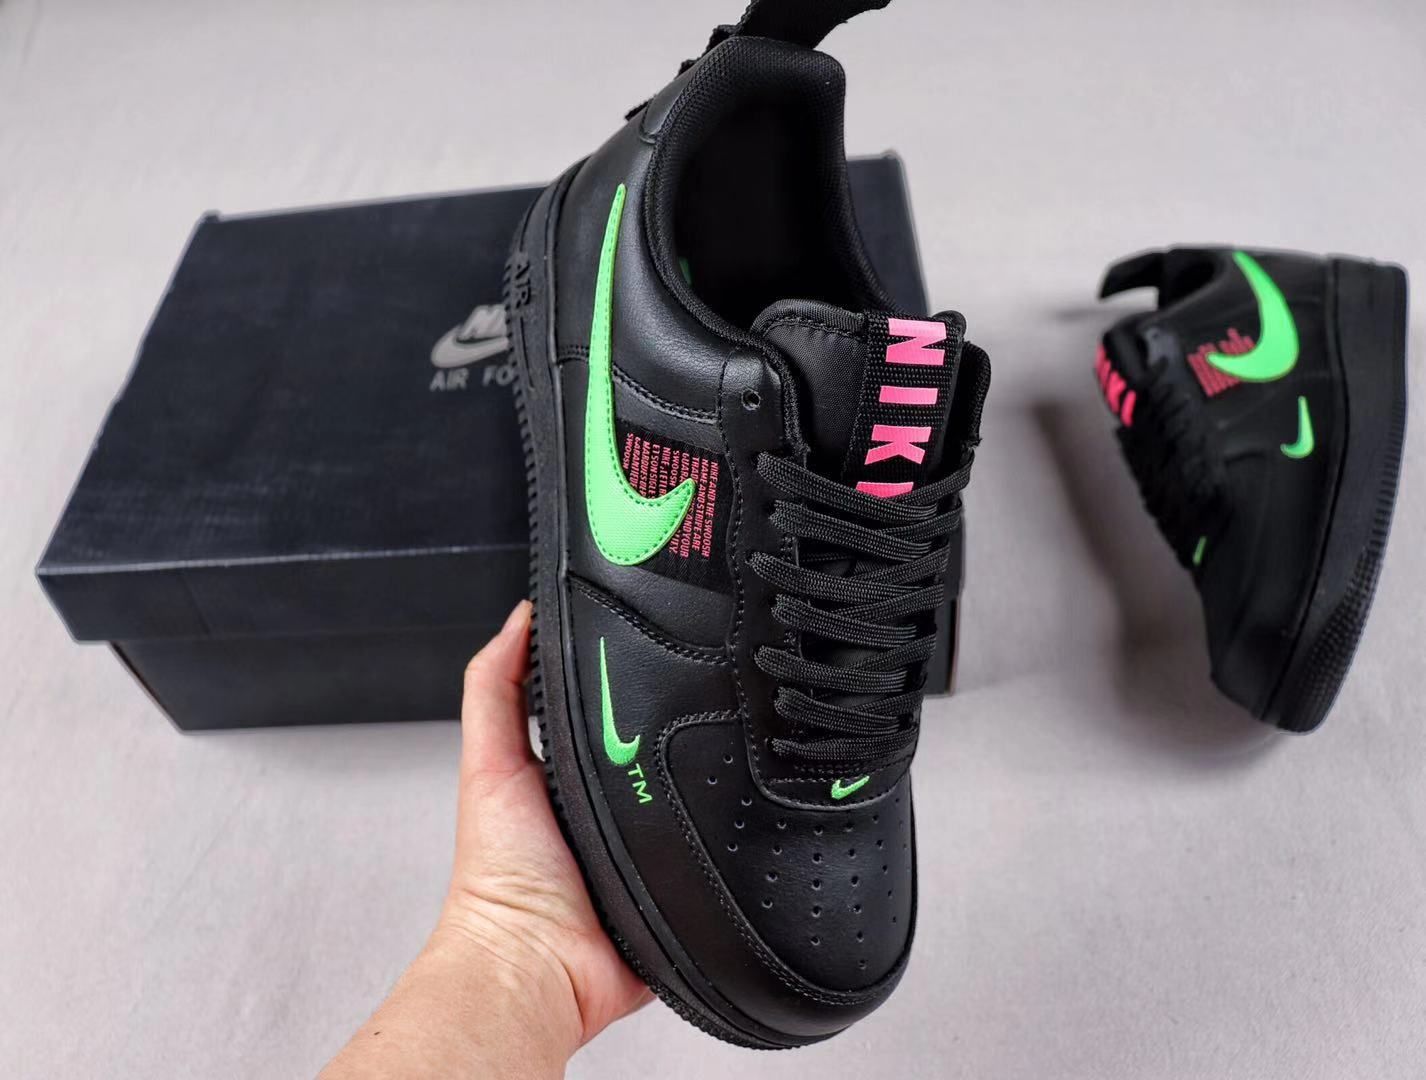 Air Force 1 Black/Hyper Pink-Scream Green Newest Shoes To Buy CQ4611-001